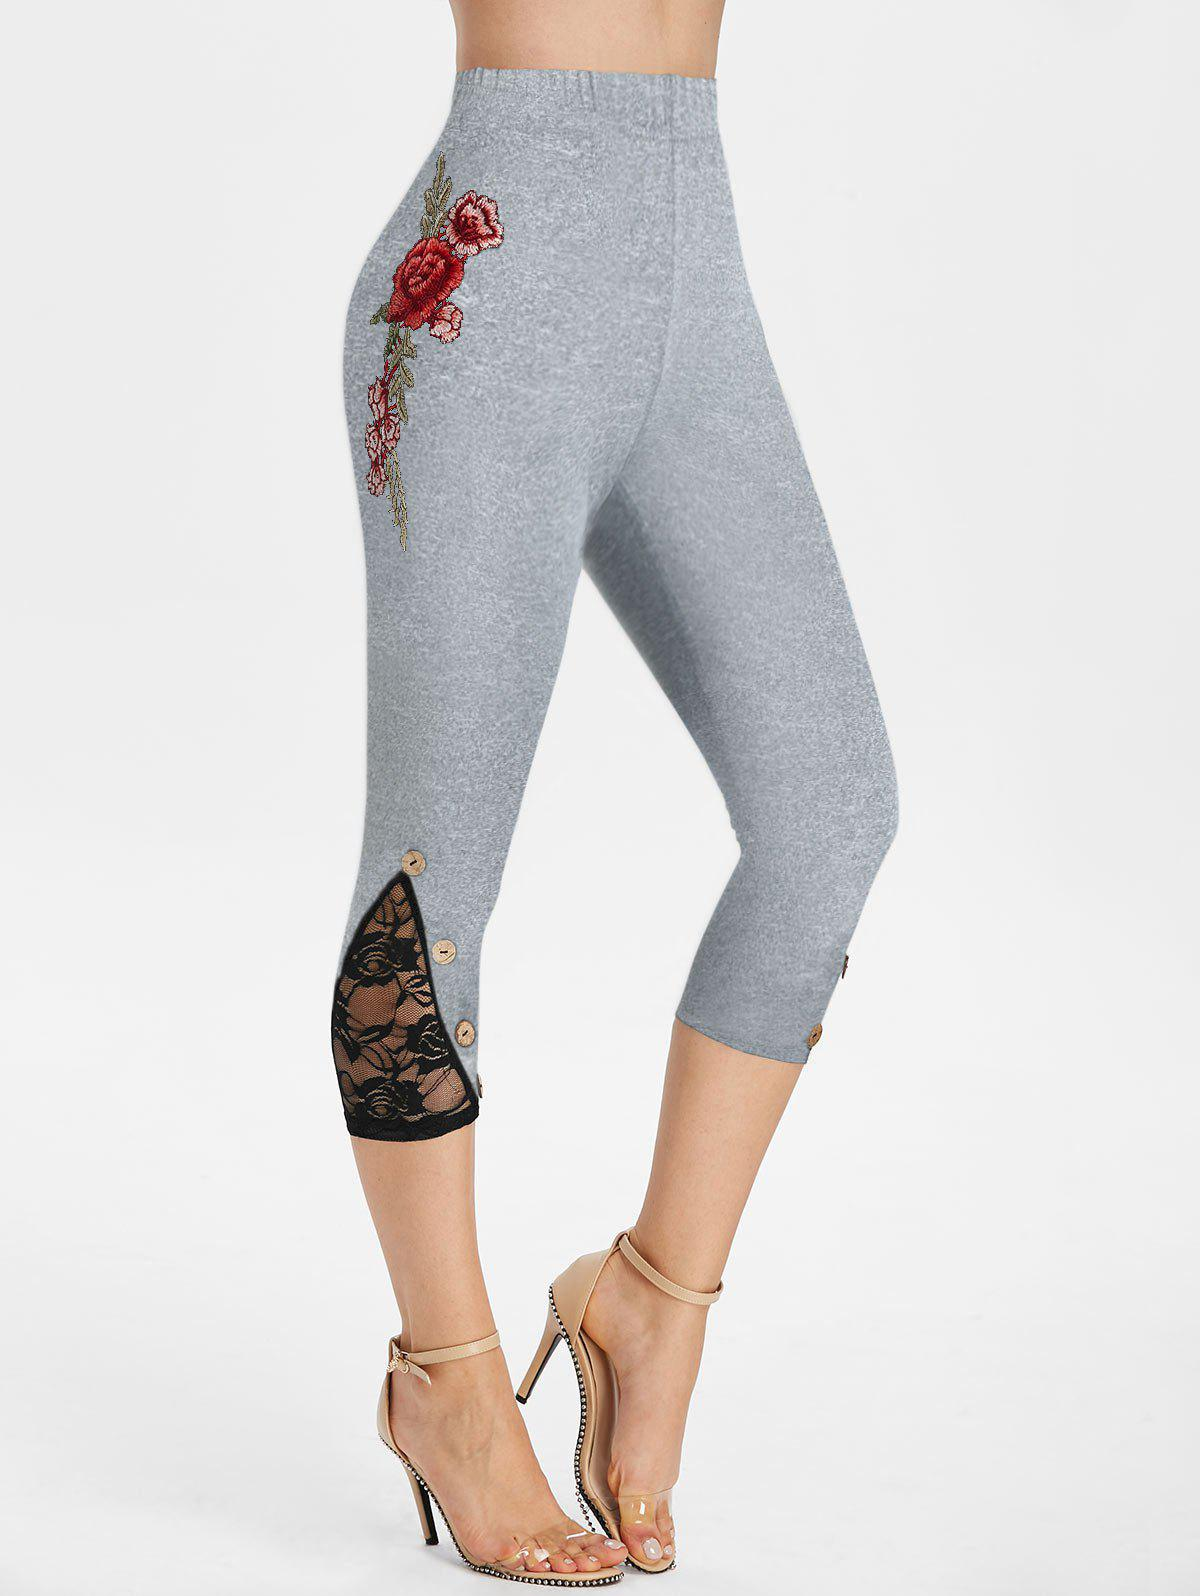 Buy Flower Embroidered Lace Insert Capri Leggings